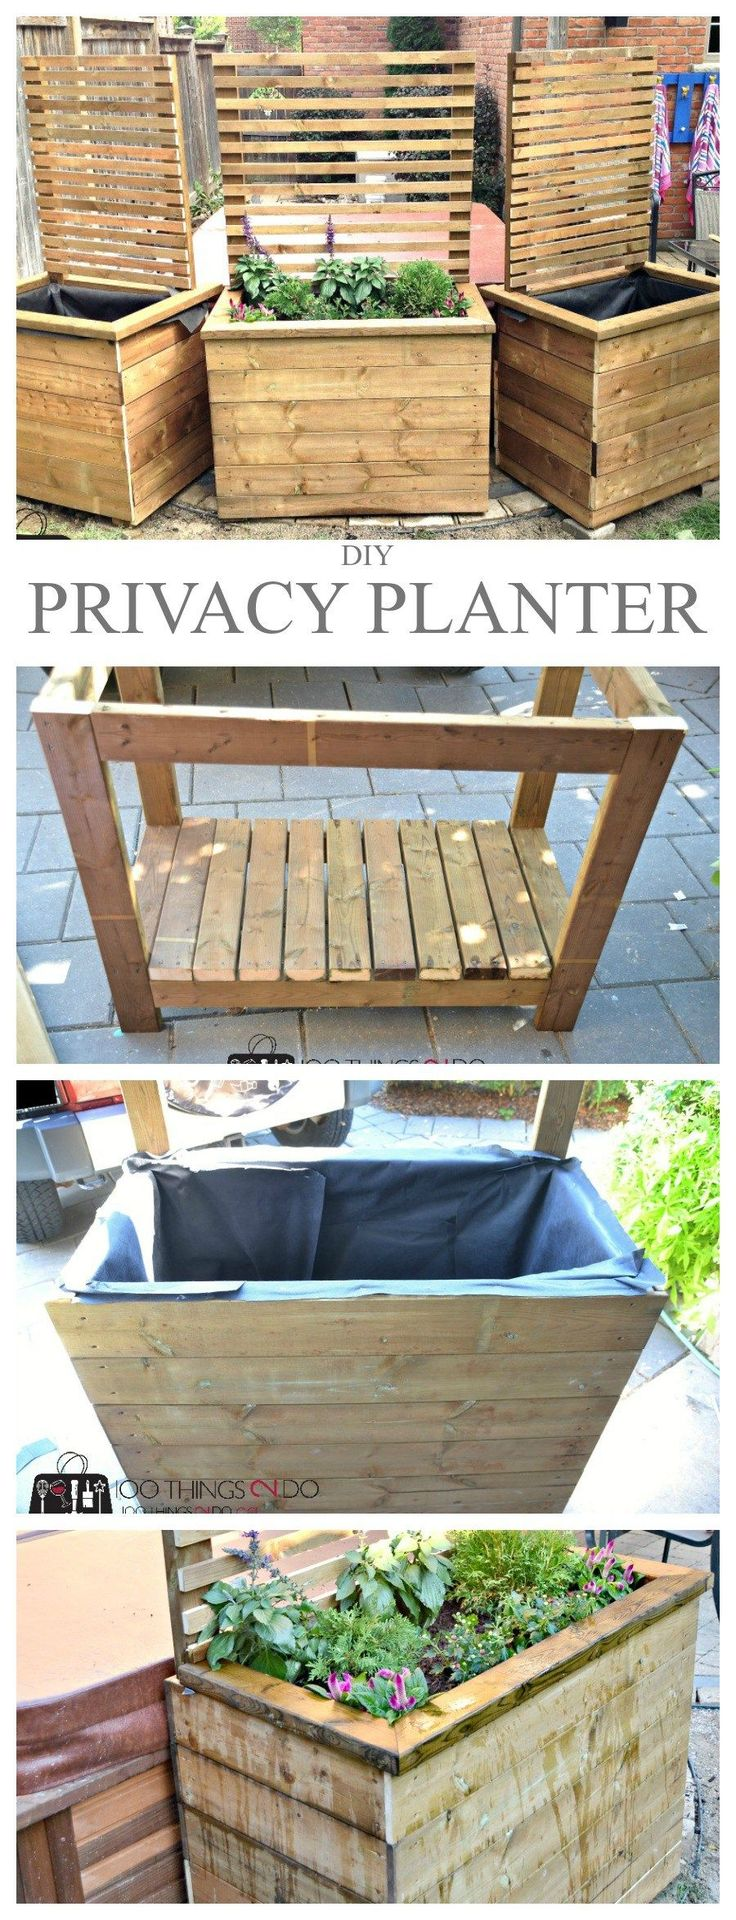 DIY privacy planter, DIY privacy screen, privacy screen, planter with screen